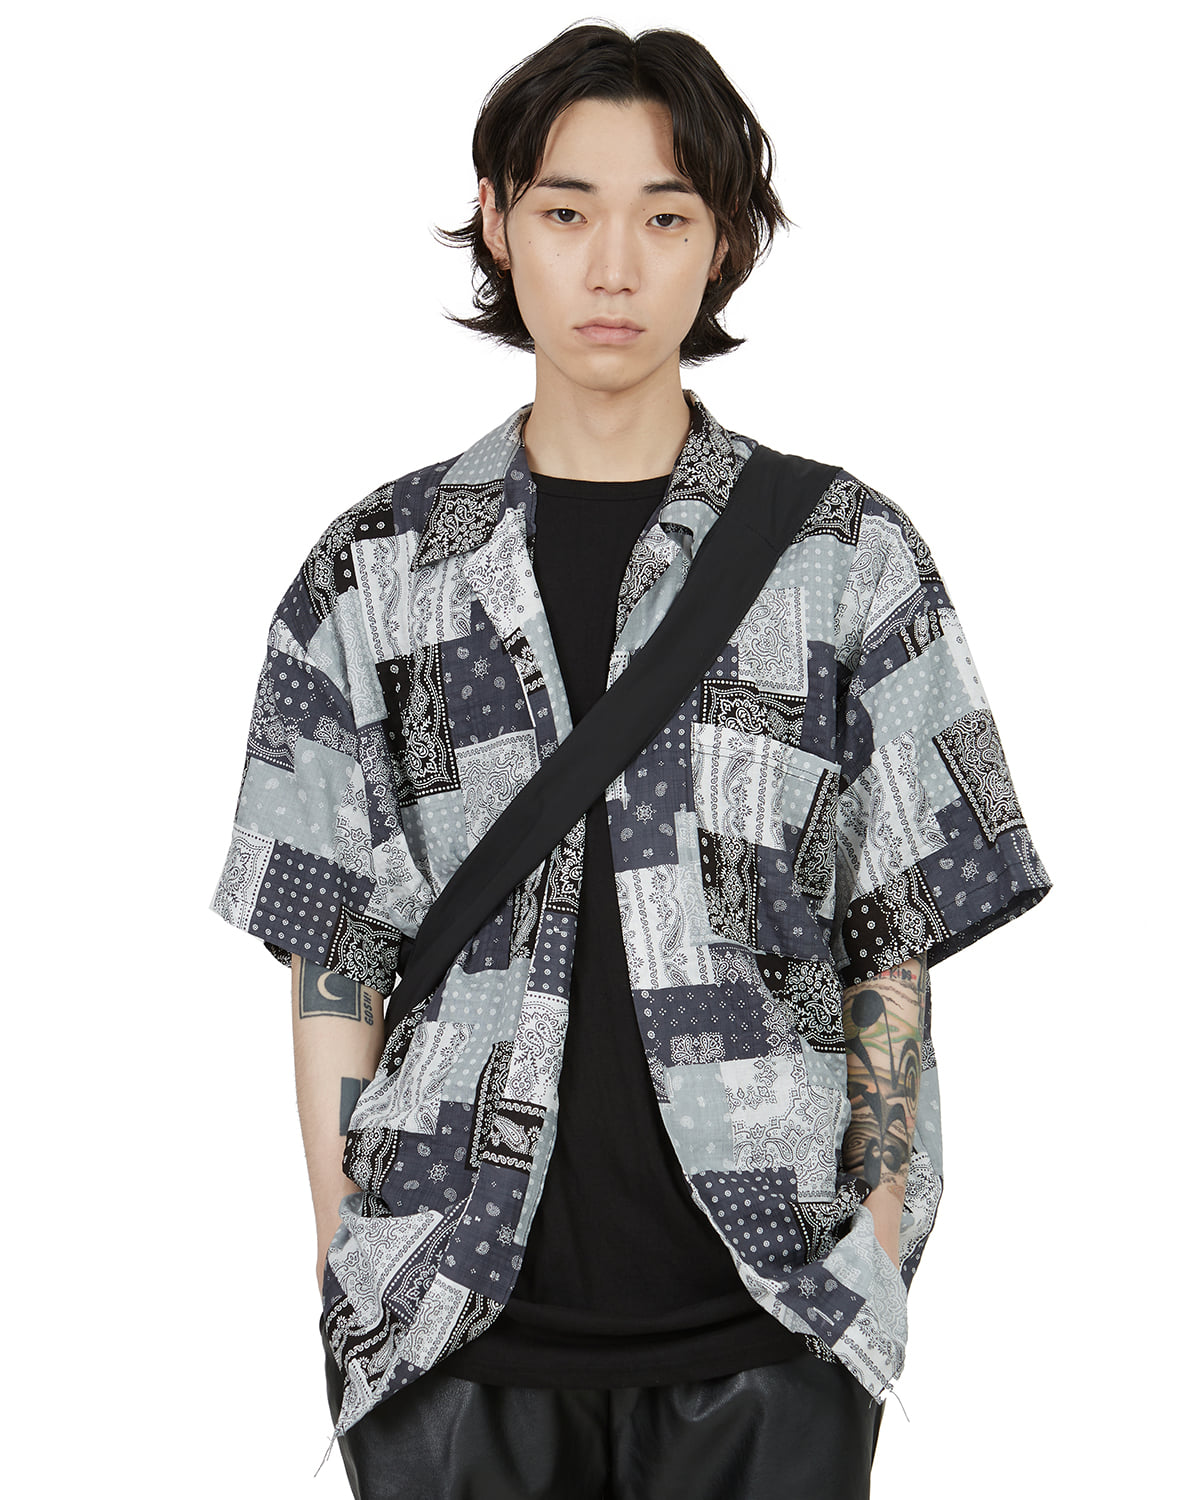 raucohouse-PAISLEY PATCHWORK 1/2 SHIRTS - RAUCO HOUSE♡韓國男裝上衣